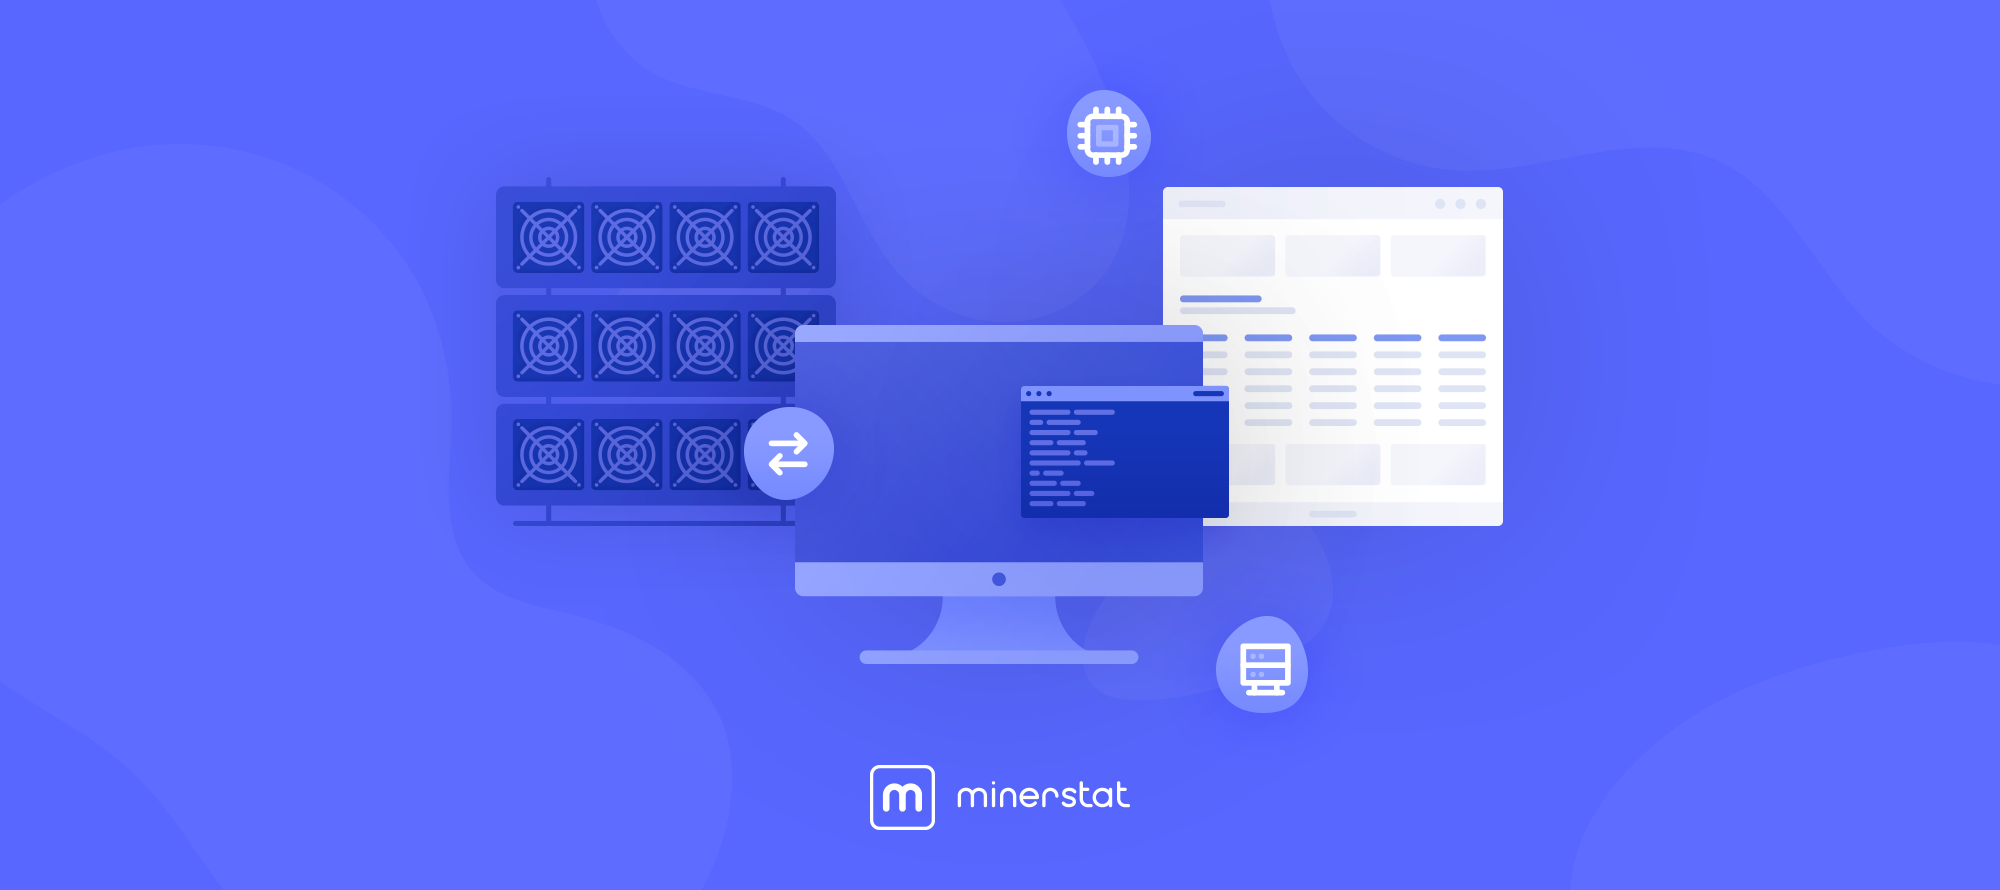 ASIC management without the SSH access - minerstat - Medium